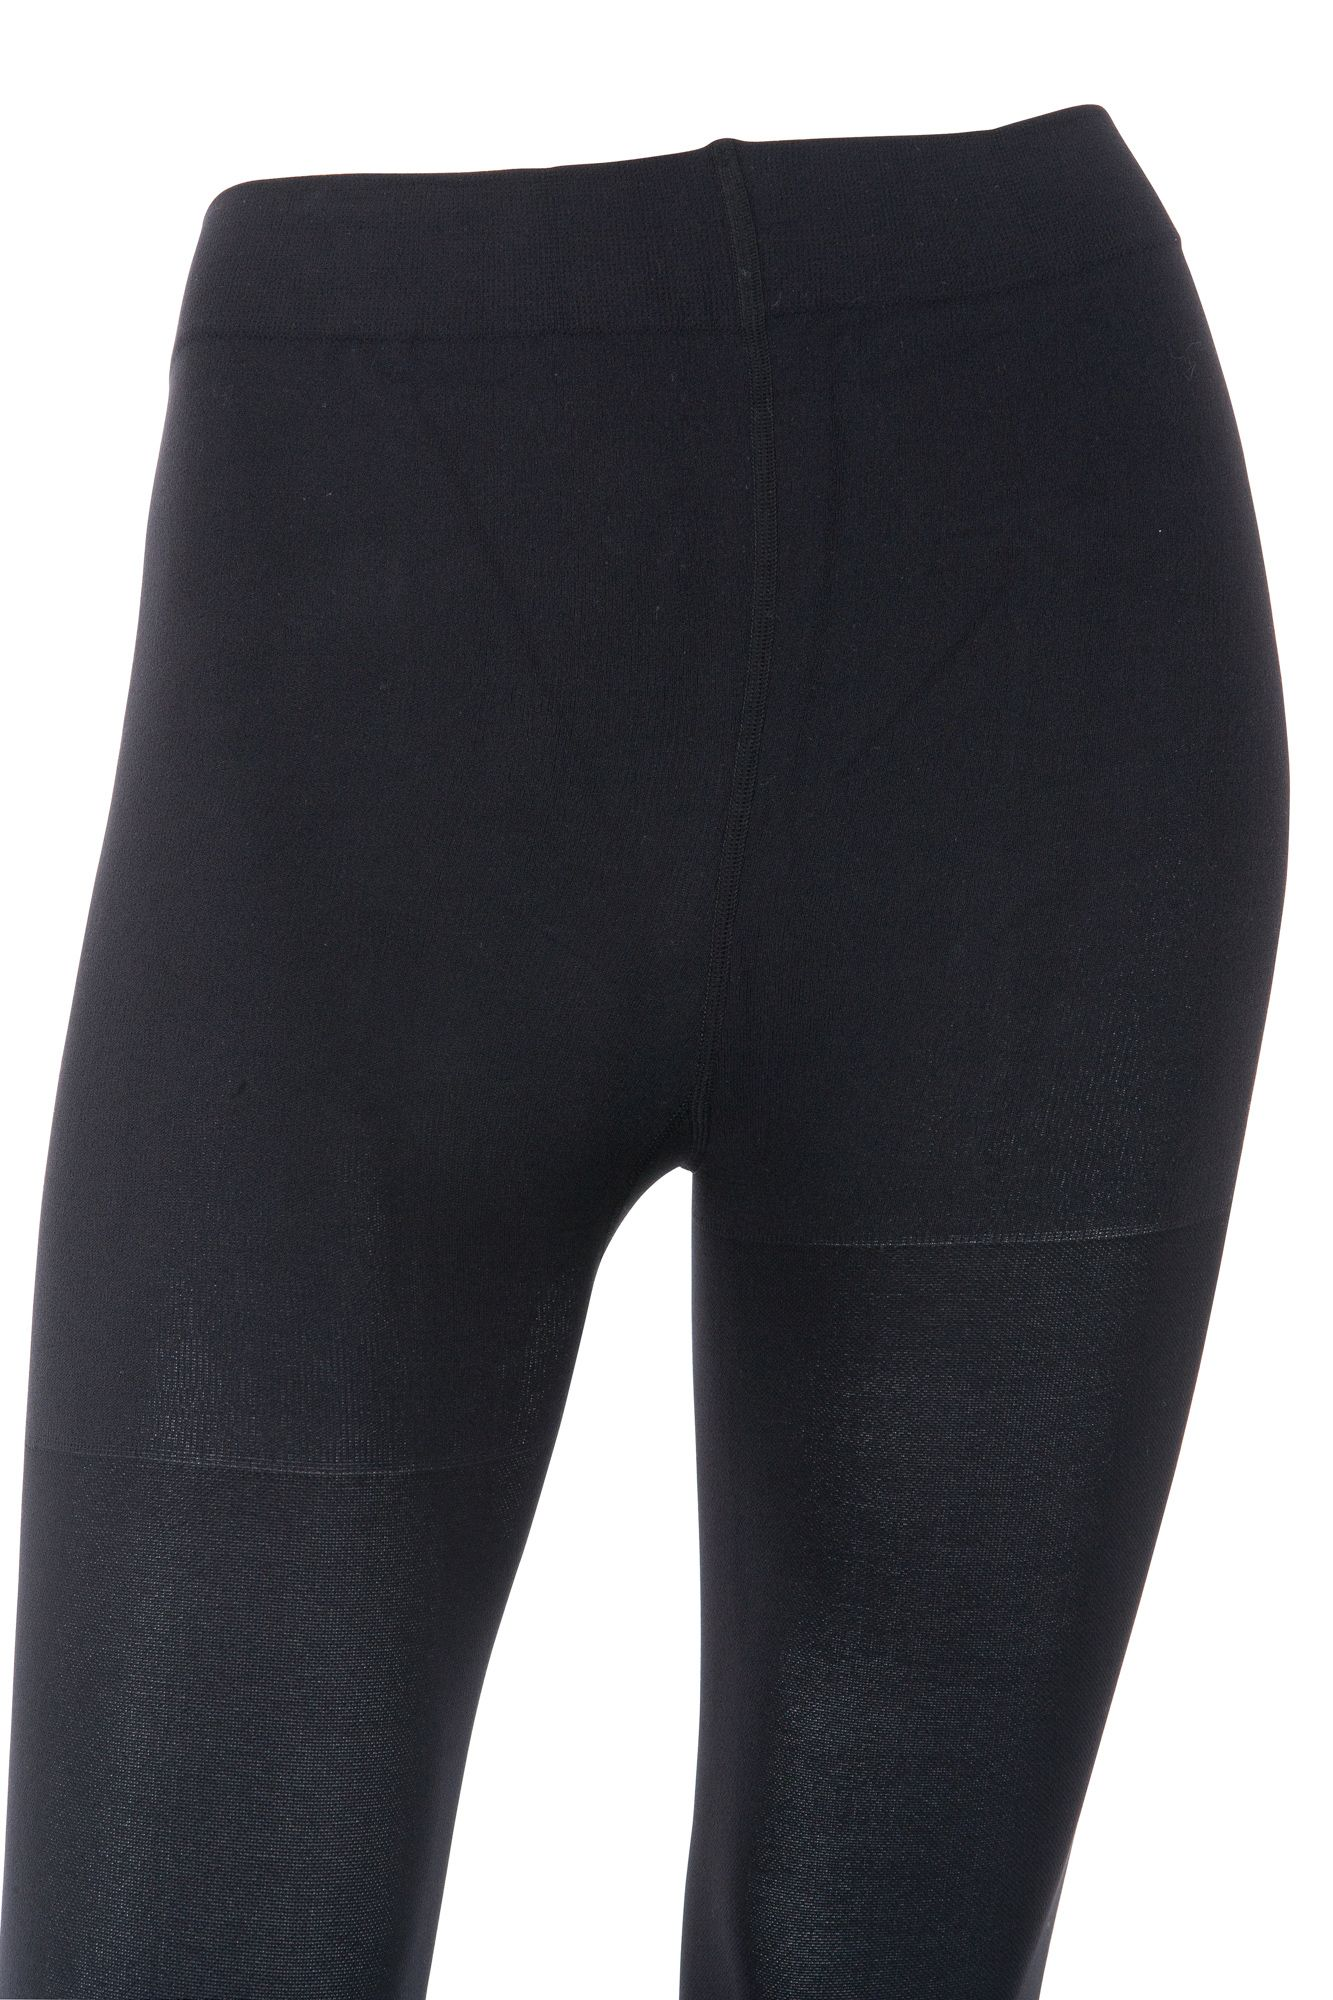 5f804fd7411ed Sigvaris Comfort Class 2 Compression Tights - Daylong